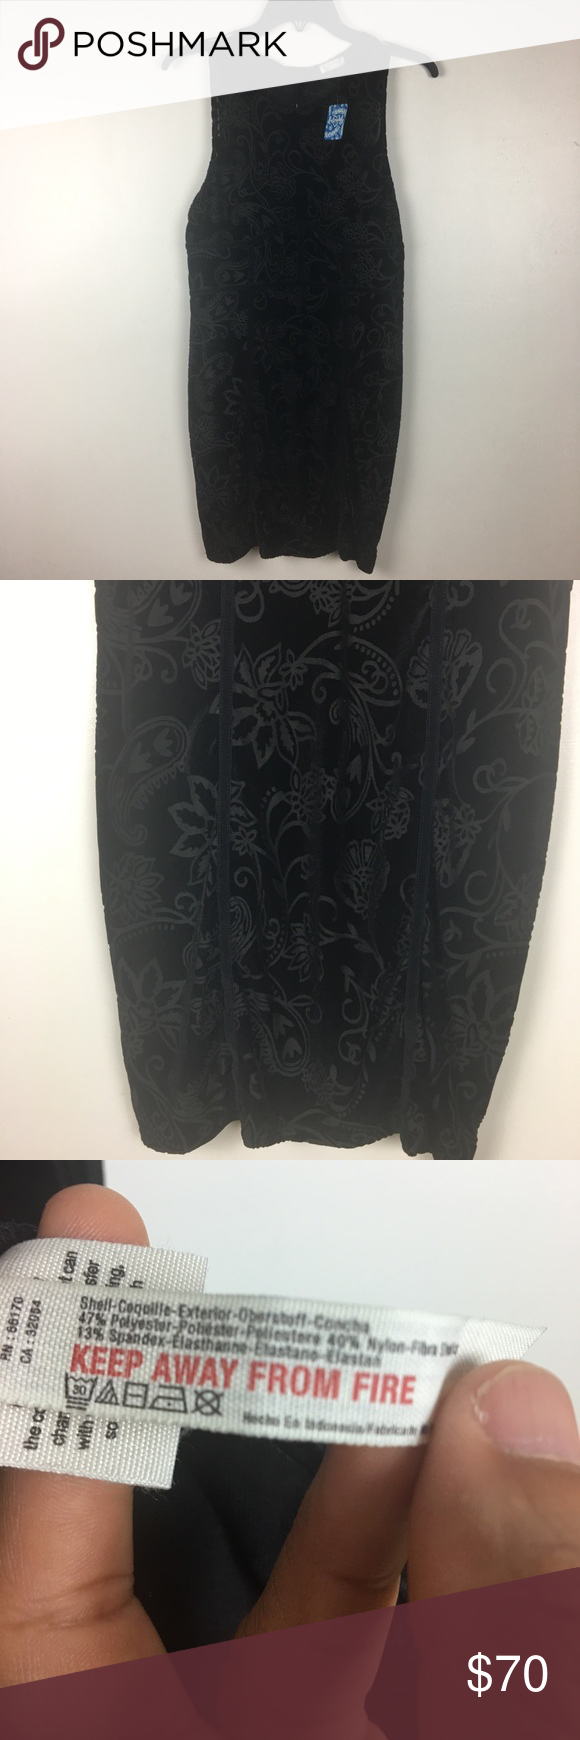 b799fe688c3 Free People Burnout Bodycon Dress Free People Burnout Bodycon Dress Keyhole  detail in the back. Floral print and crew neck Condition  NWT Color  Black  ...